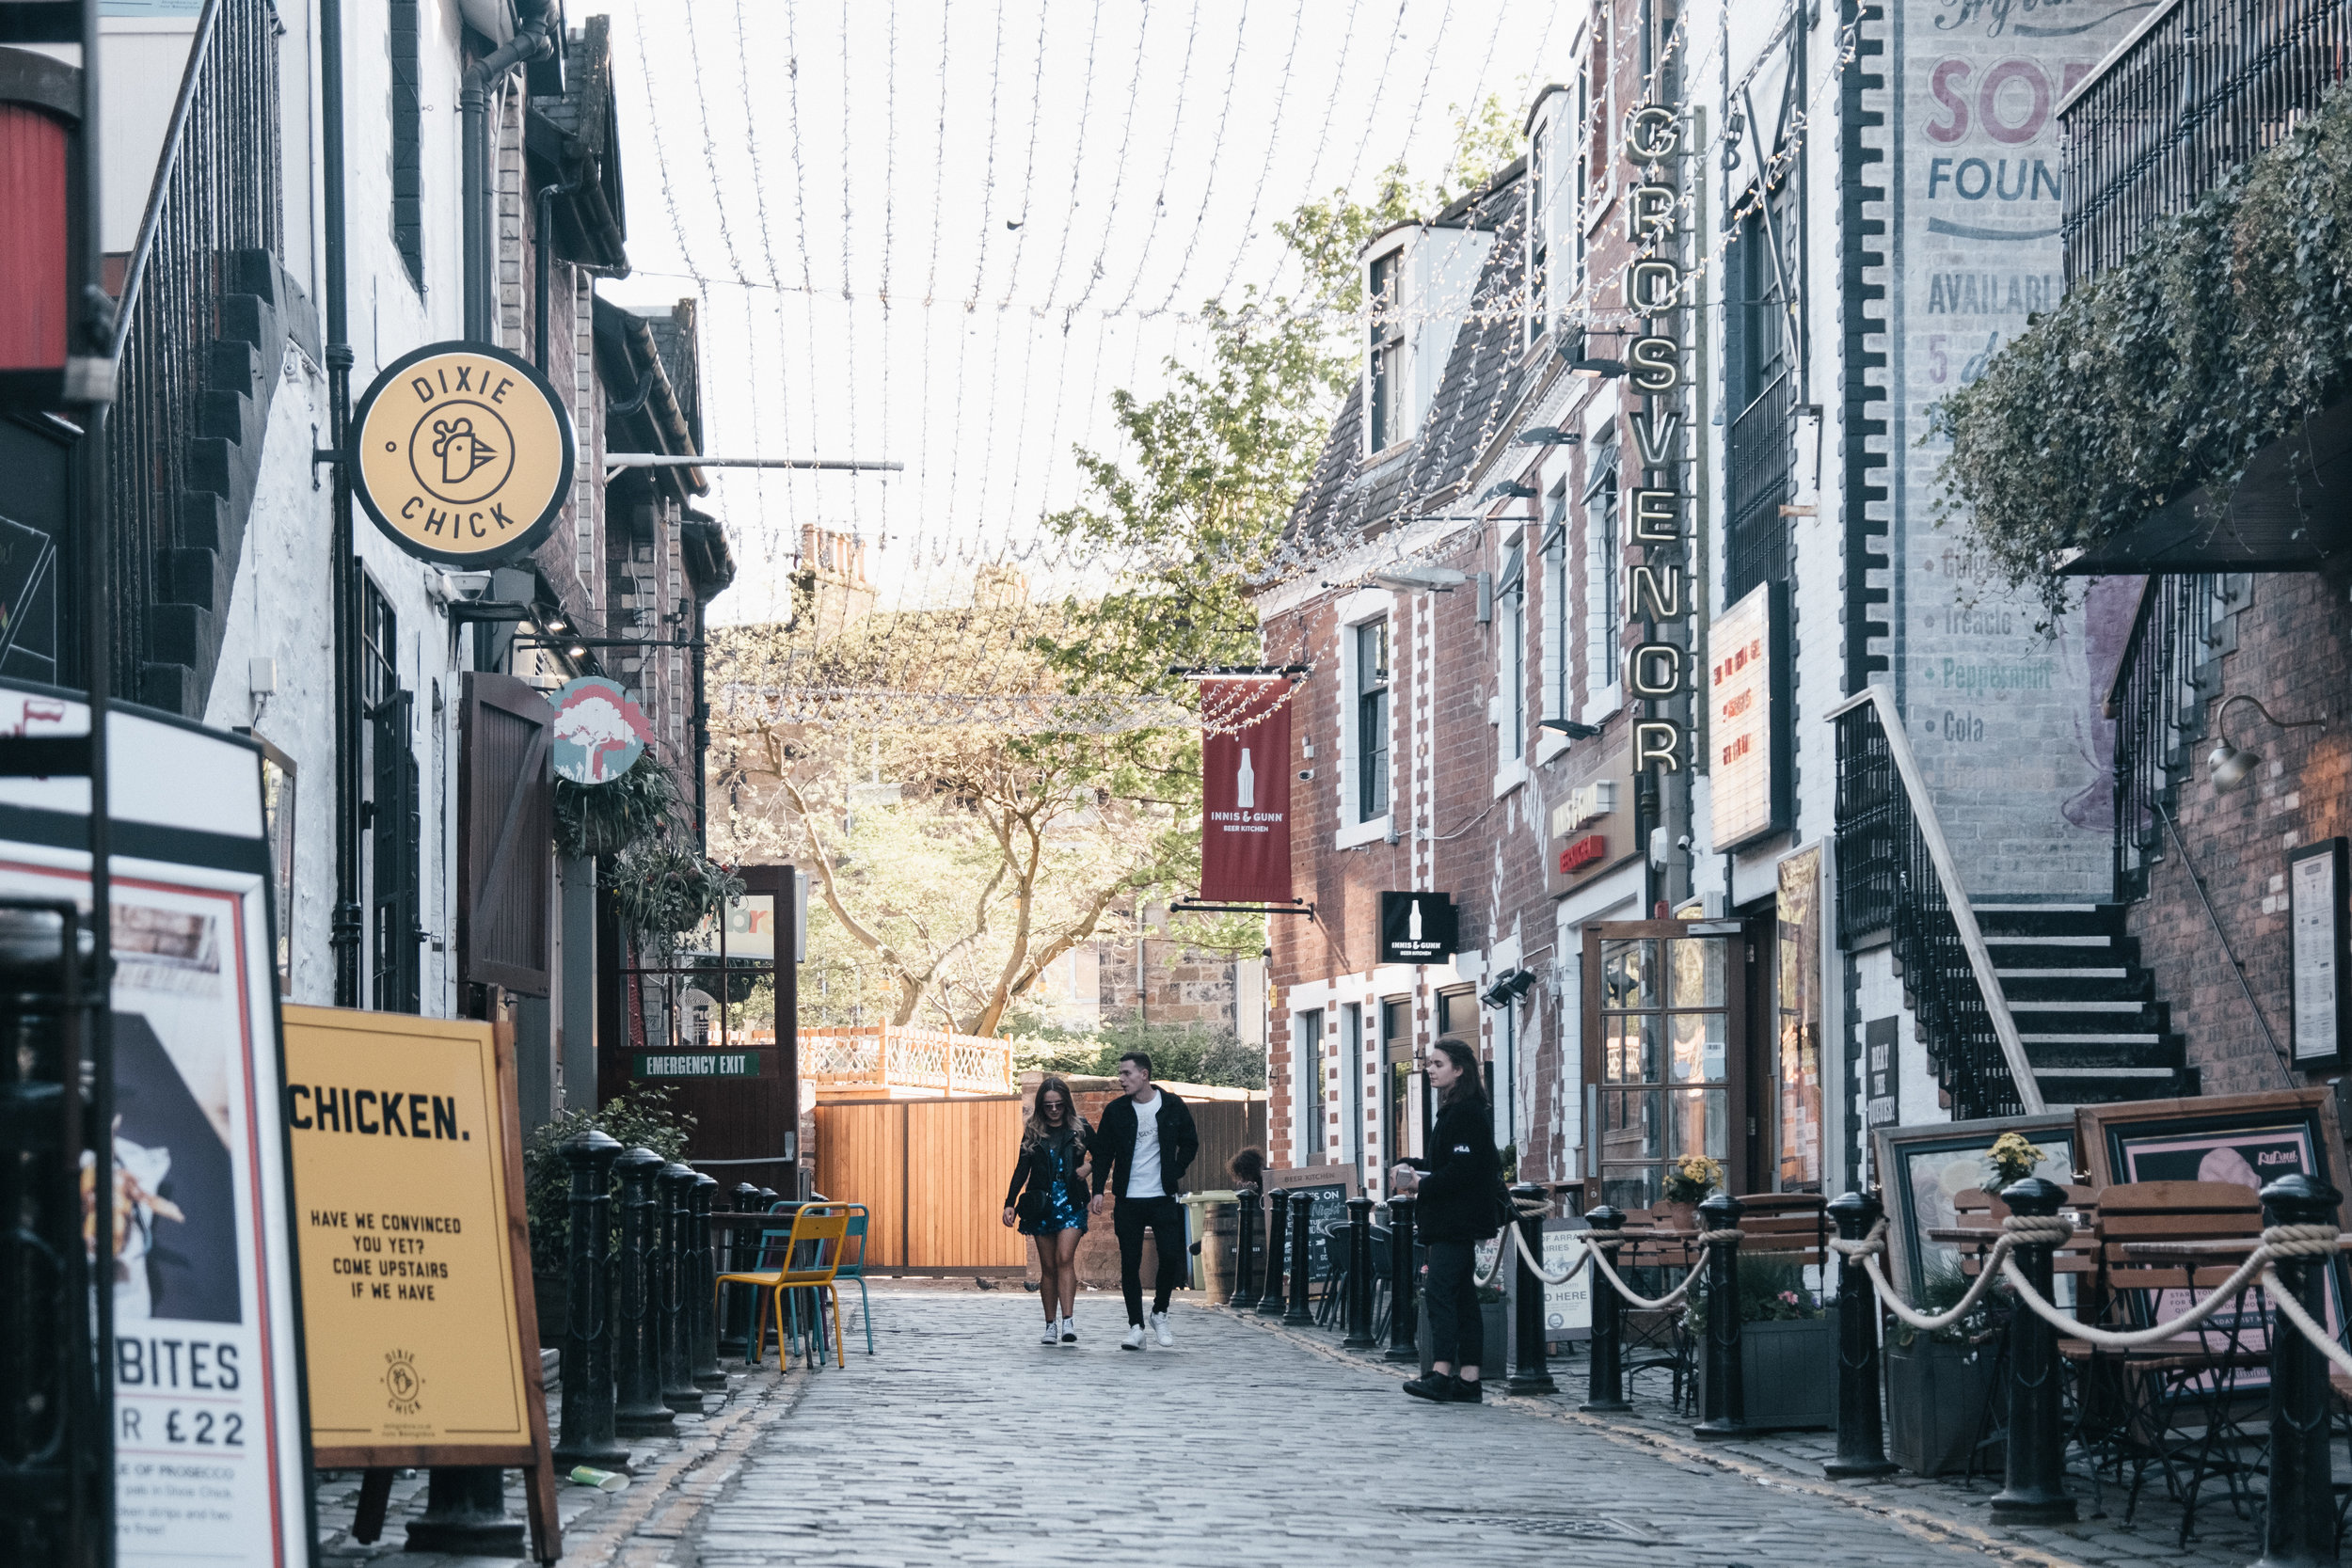 Ashton Lane is included in theGlasgow City guide